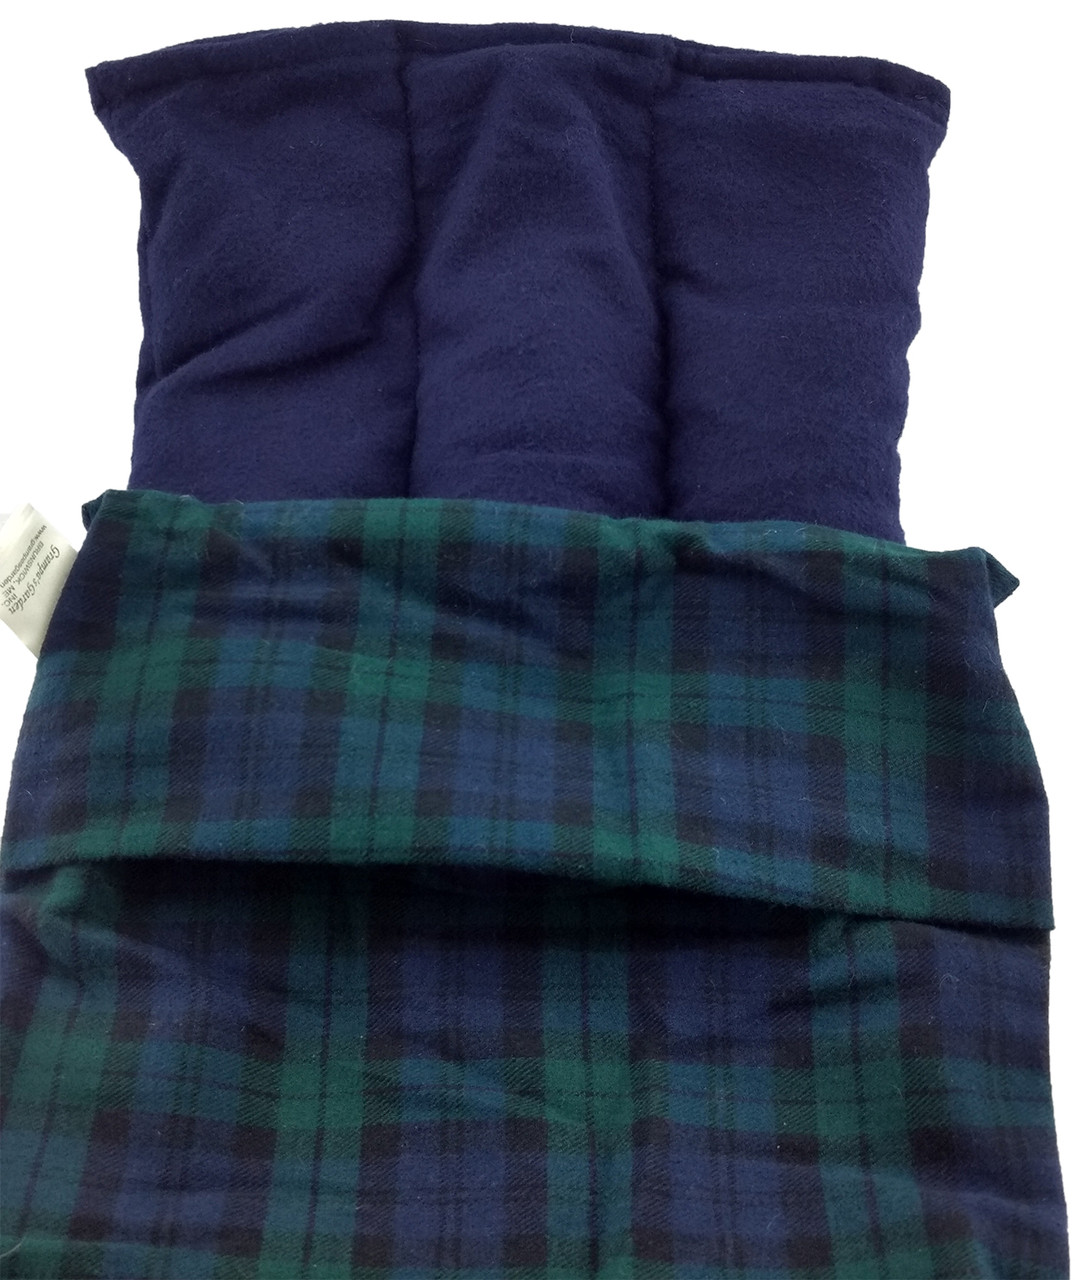 Lumbar Pack is Designed for Use on the Upper, Mid, or Lower Back and Hips - Black Watch Flannel Fabric